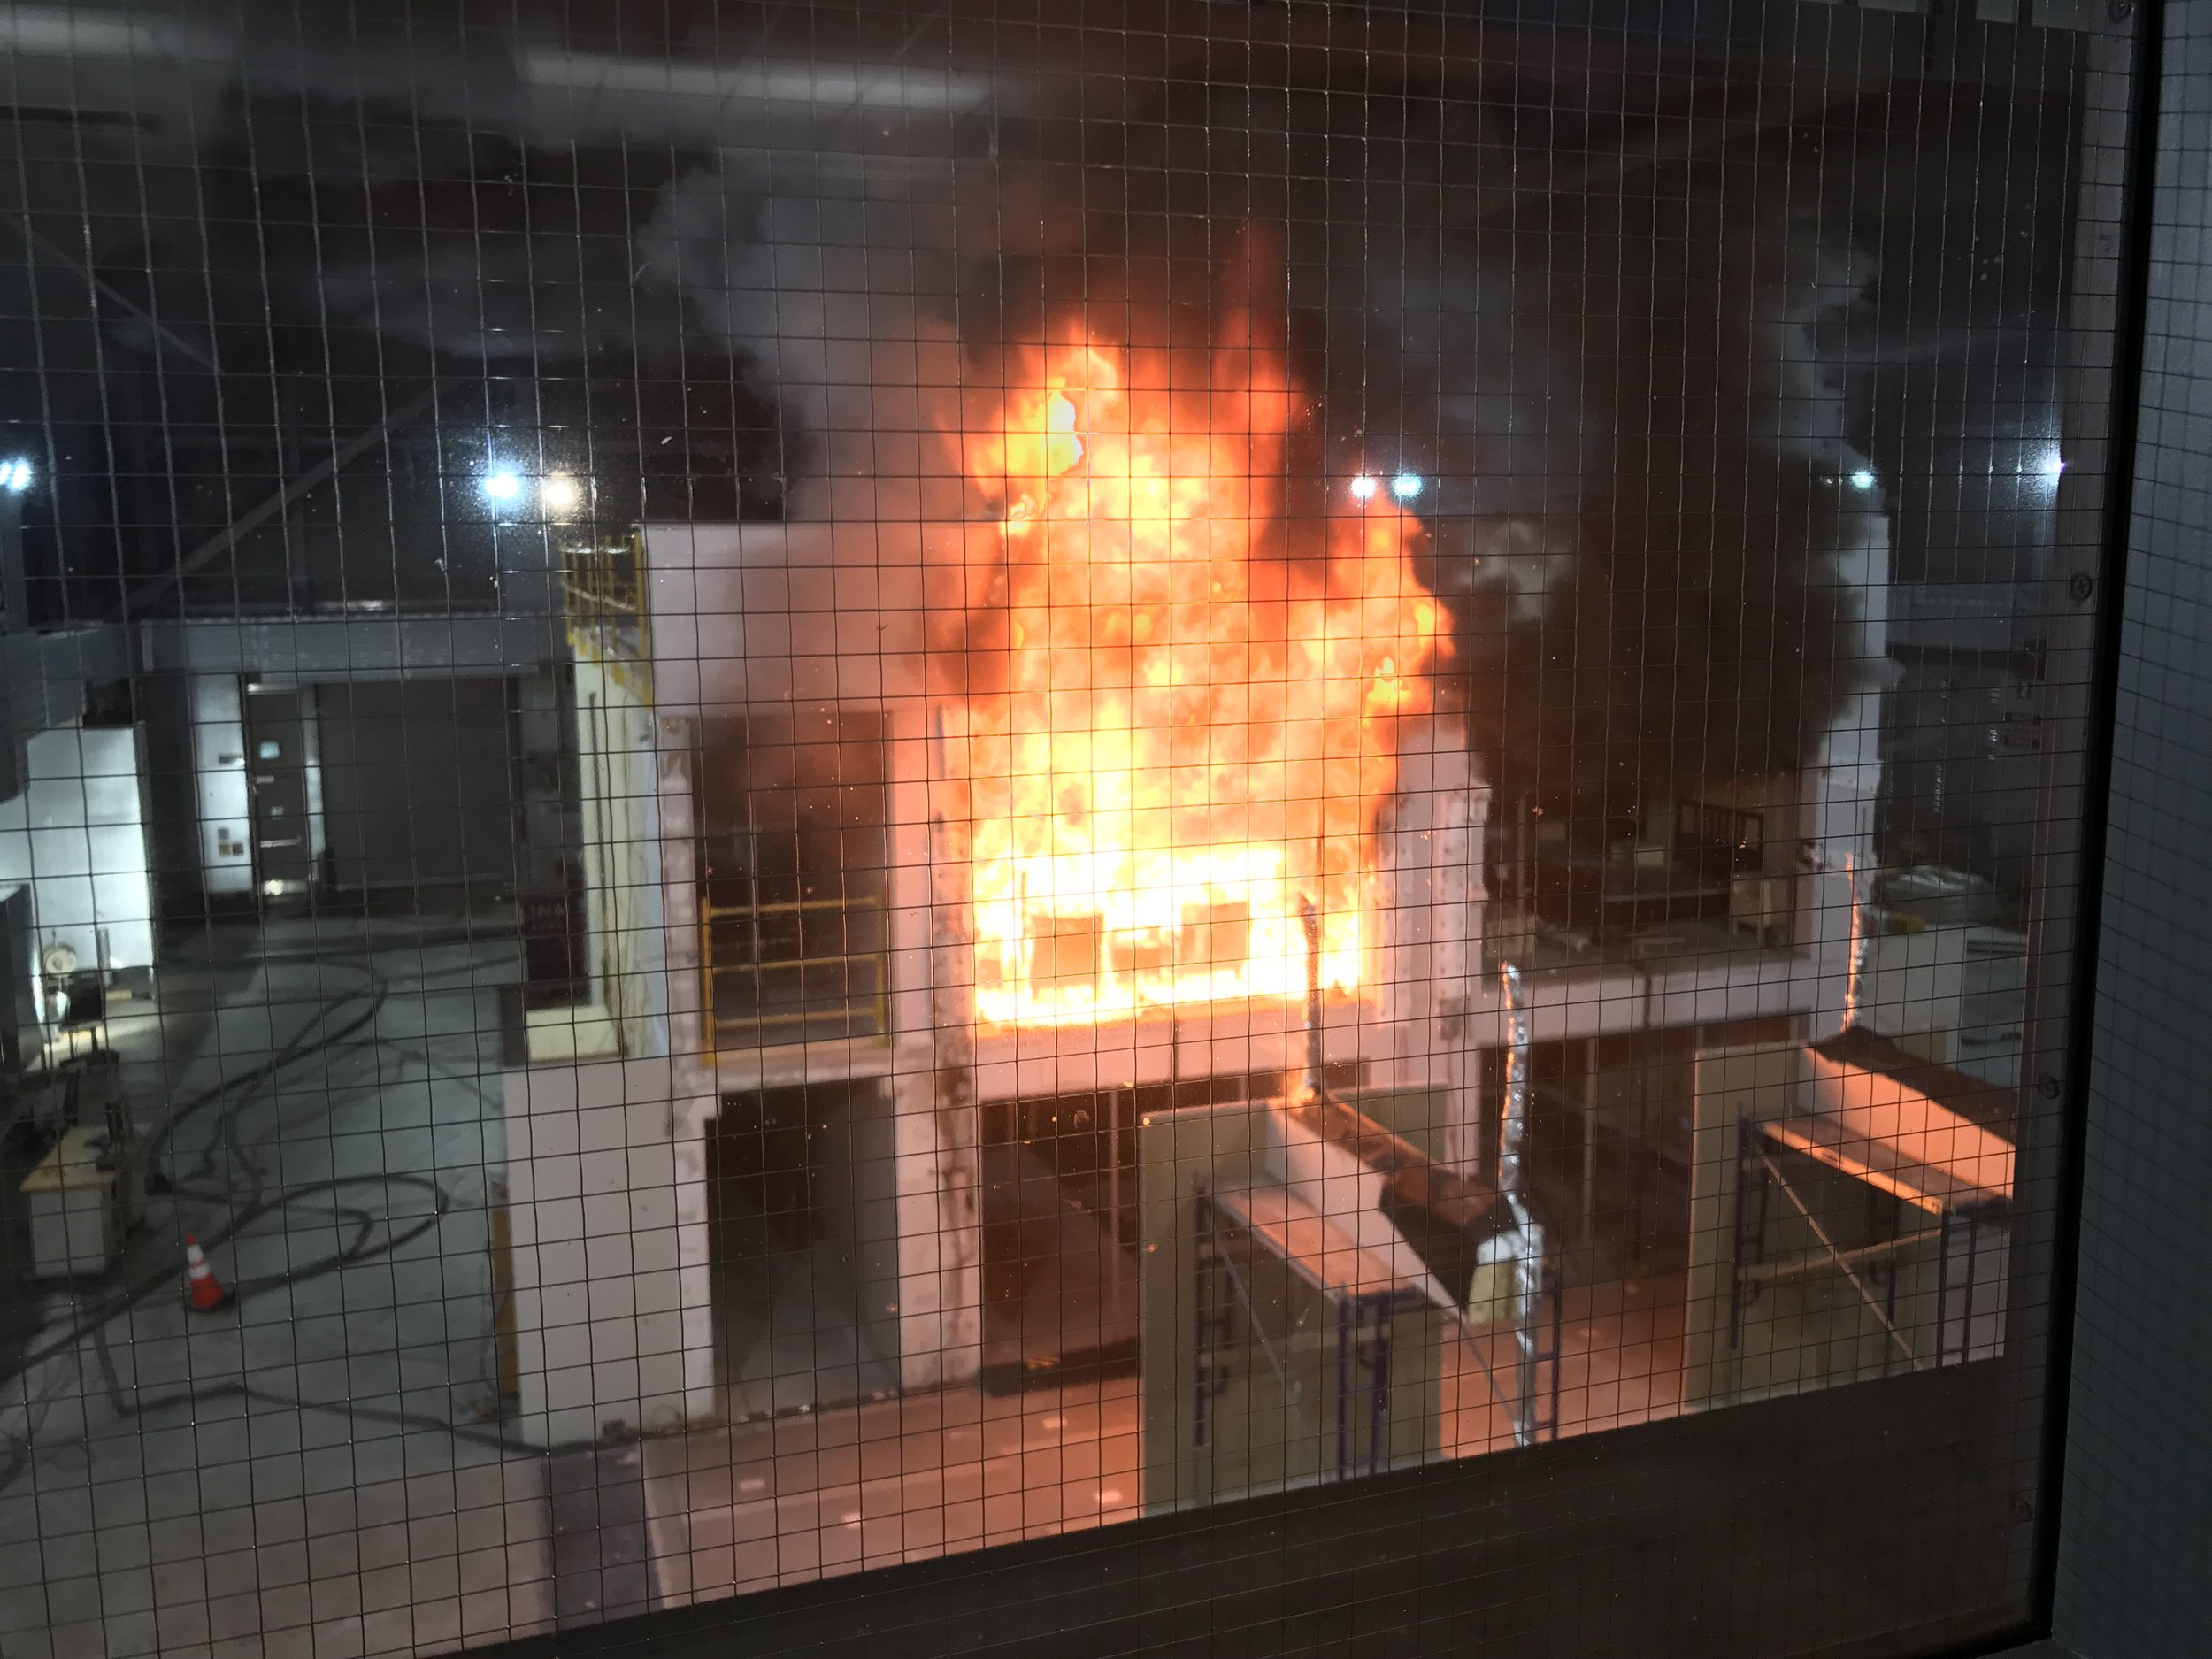 Fire Test No. 3, at the US Bureau of Alcohol, Tobacco and Firearms outside of Washington DC, showing a Mass Timber compartment structure being burned for up to four hours without sprinklers to test the fire capacity of Mass Timber. Photo: Susan Jones